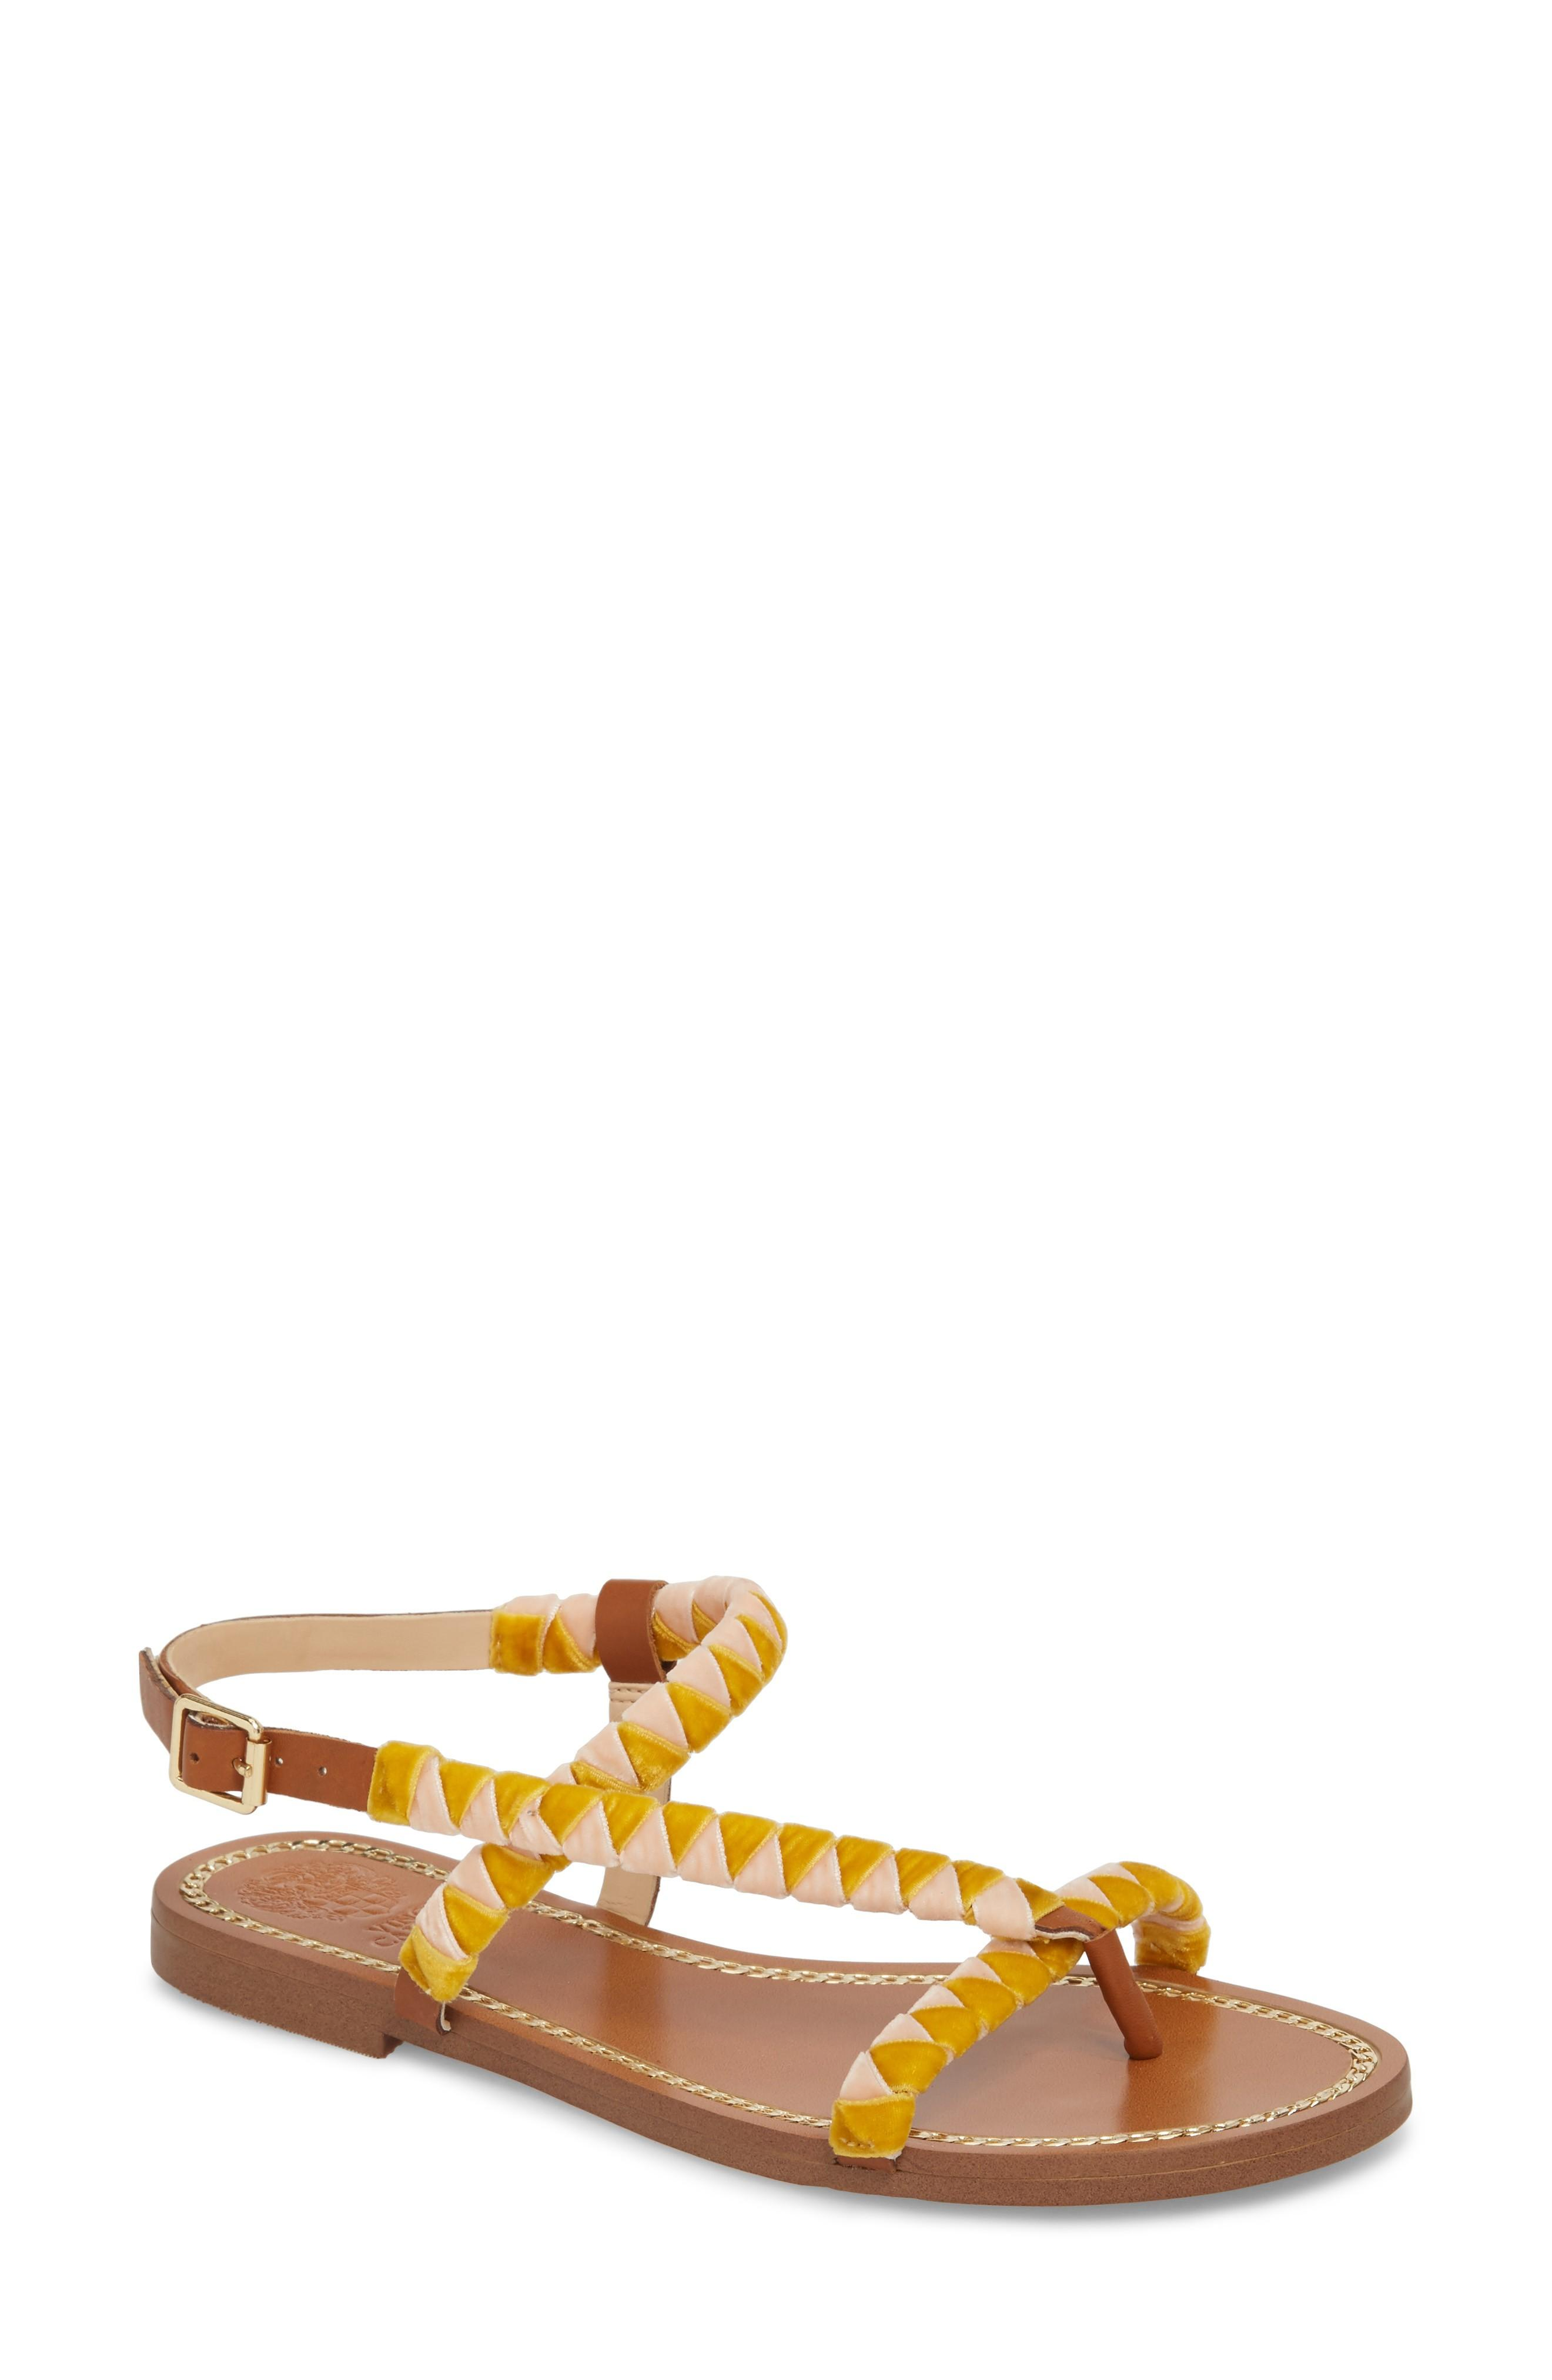 Vince Camuto Raminta Sandal In Red